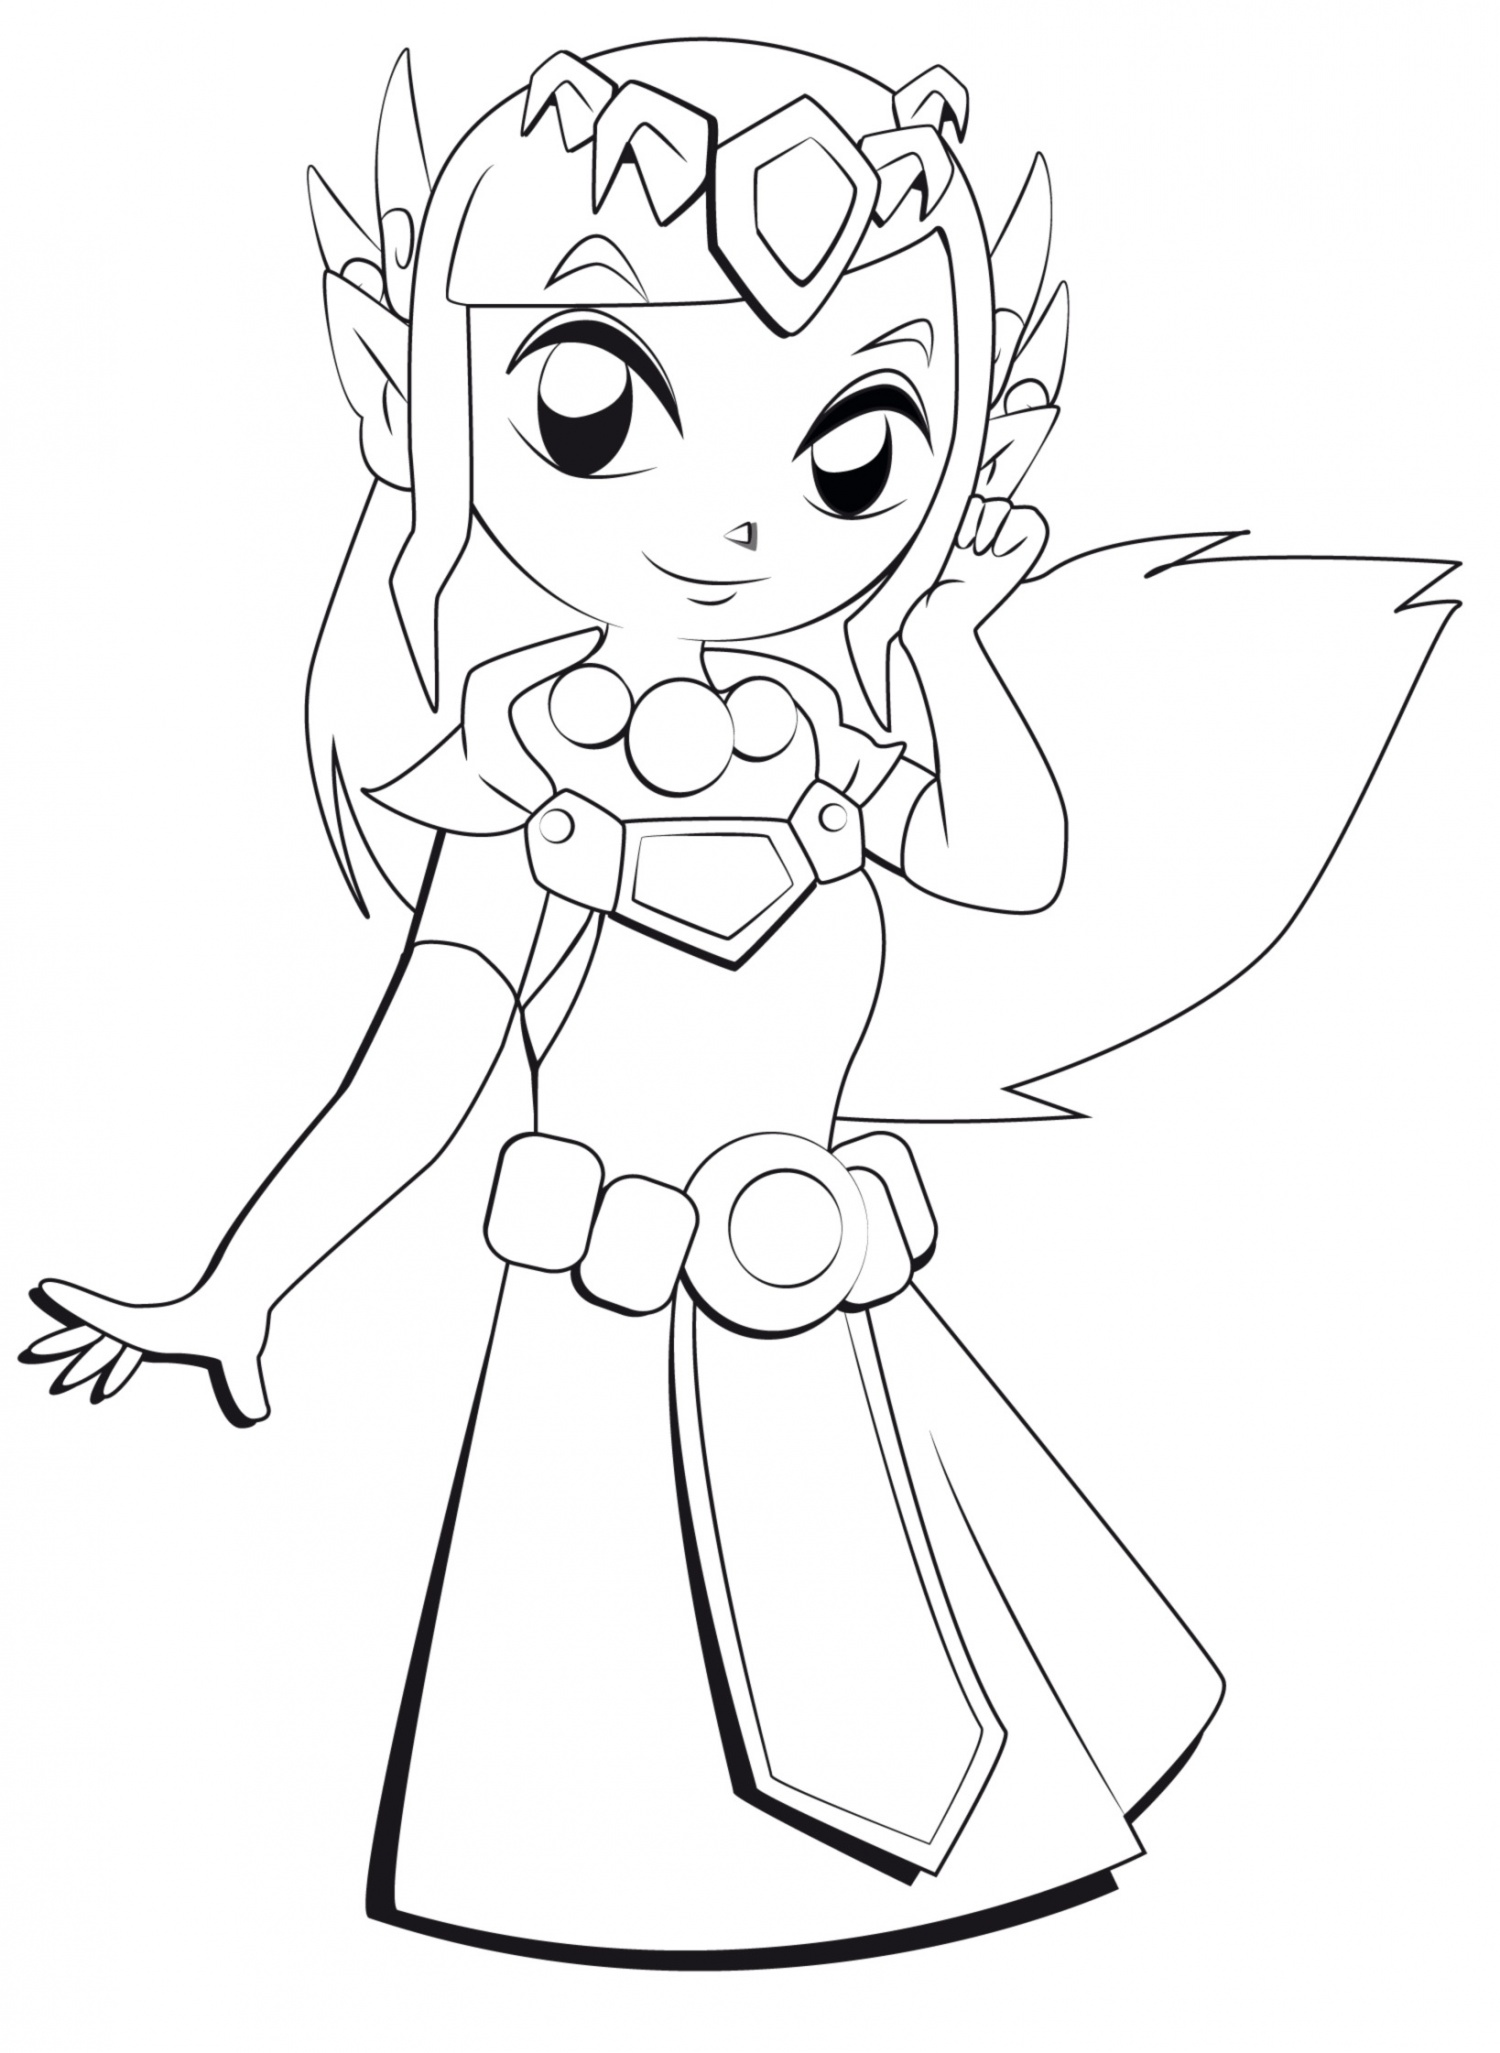 Agréable Coloriage Zelda Breath Of The Wild 63 Dans Coloriage Pages by Coloriage Zelda Breath Of The Wild